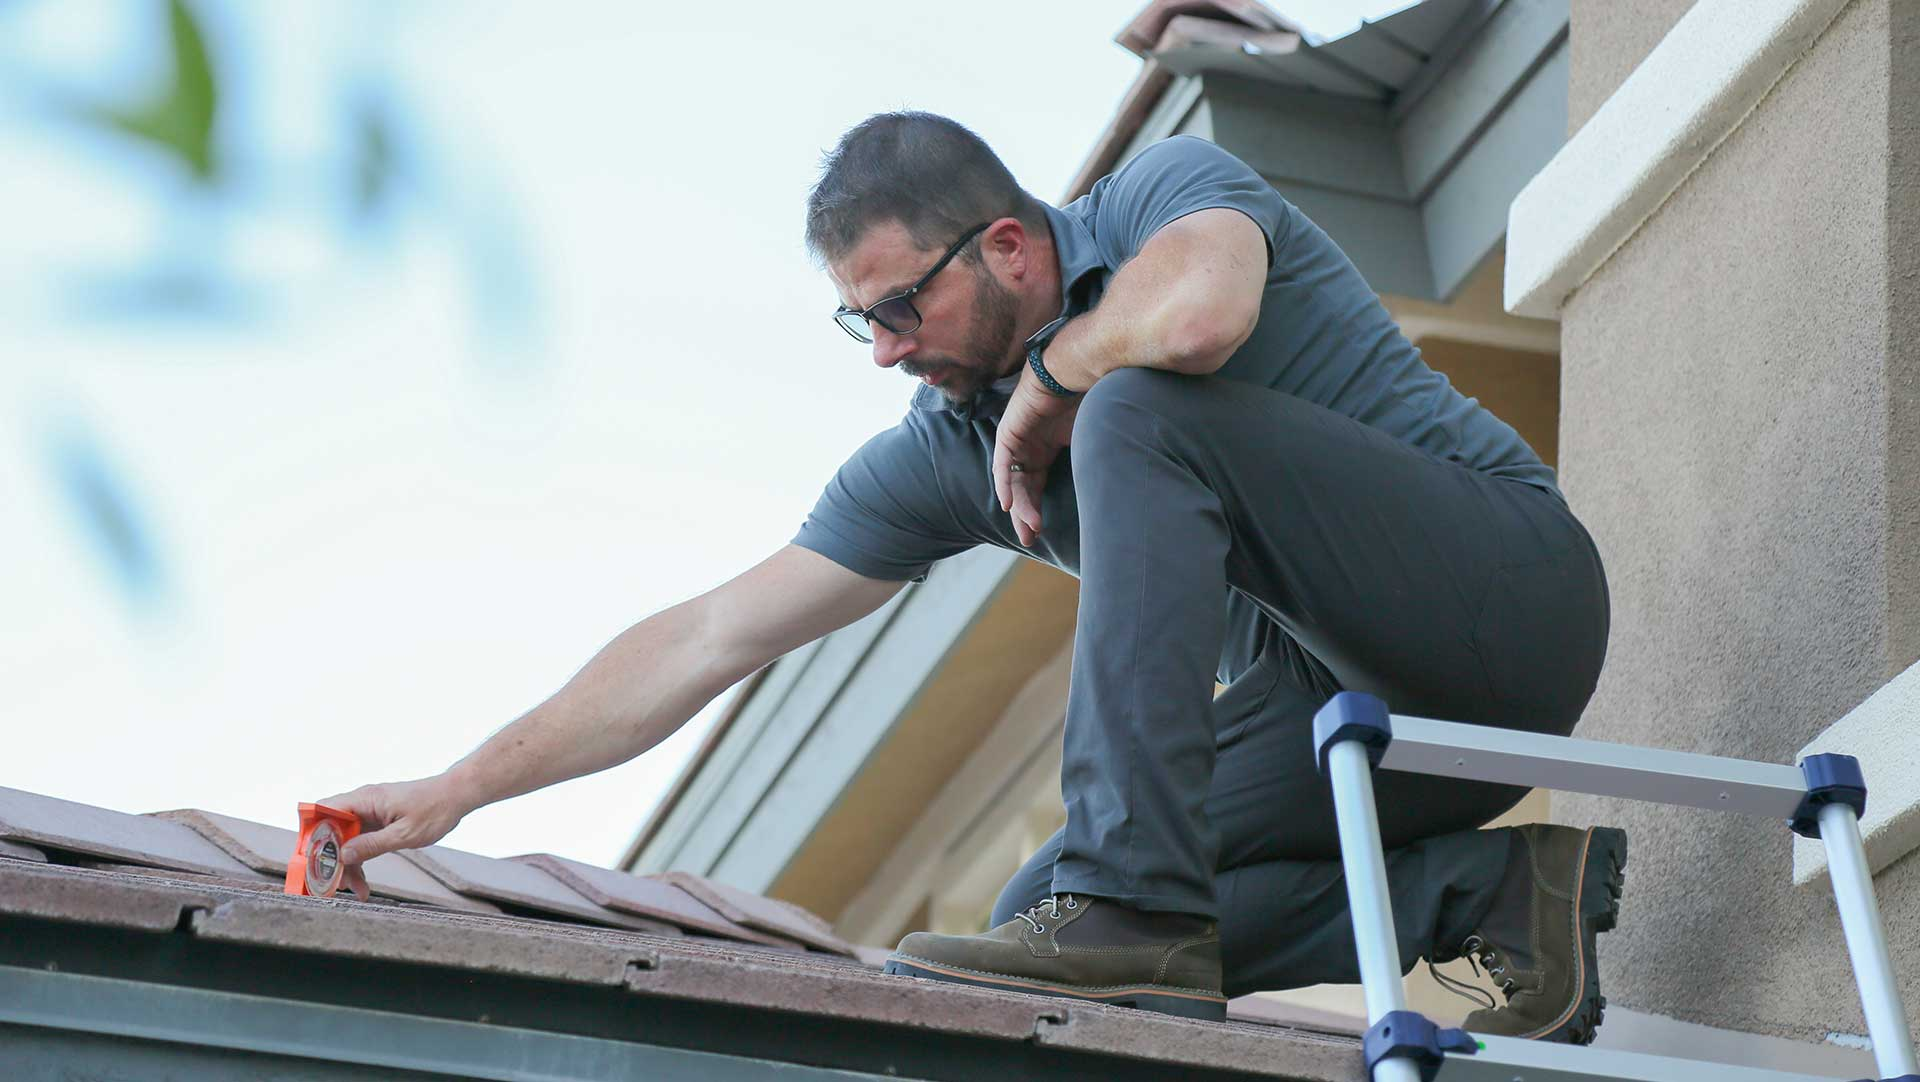 Darrel Fall Owner, Vegas Valley Inspections on roof